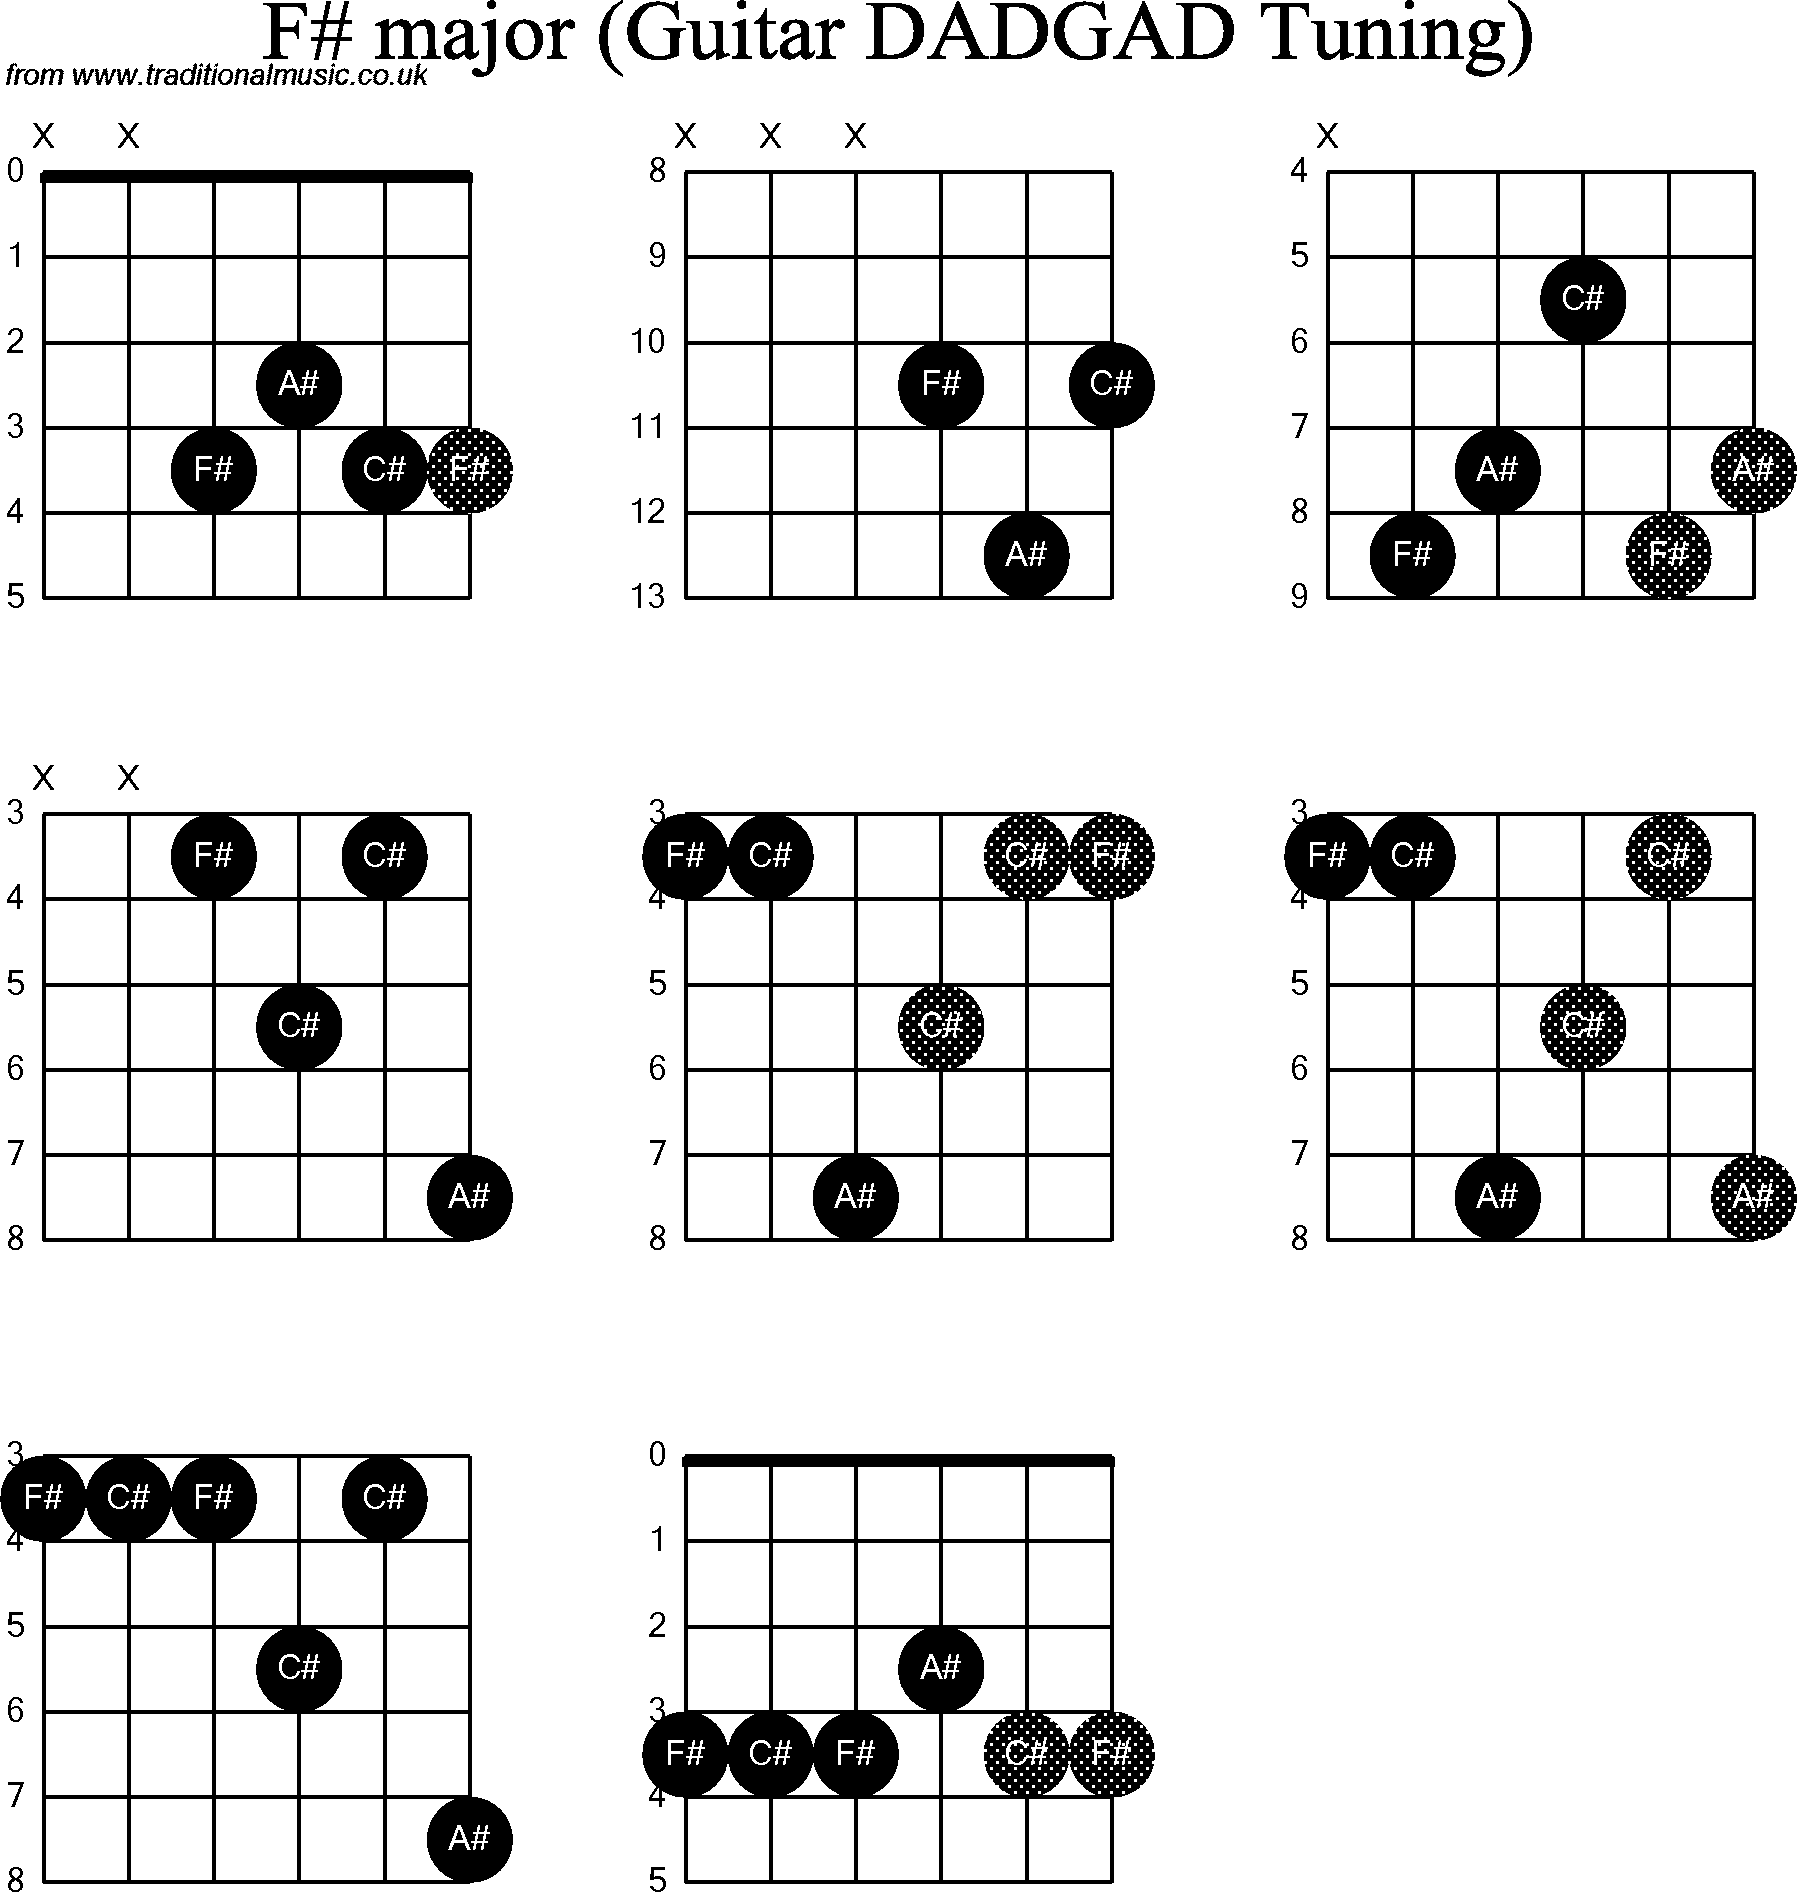 Chord diagrams d modal guitar dadgad f sharp chord diagrams for d modal guitardadgad f sharp hexwebz Gallery